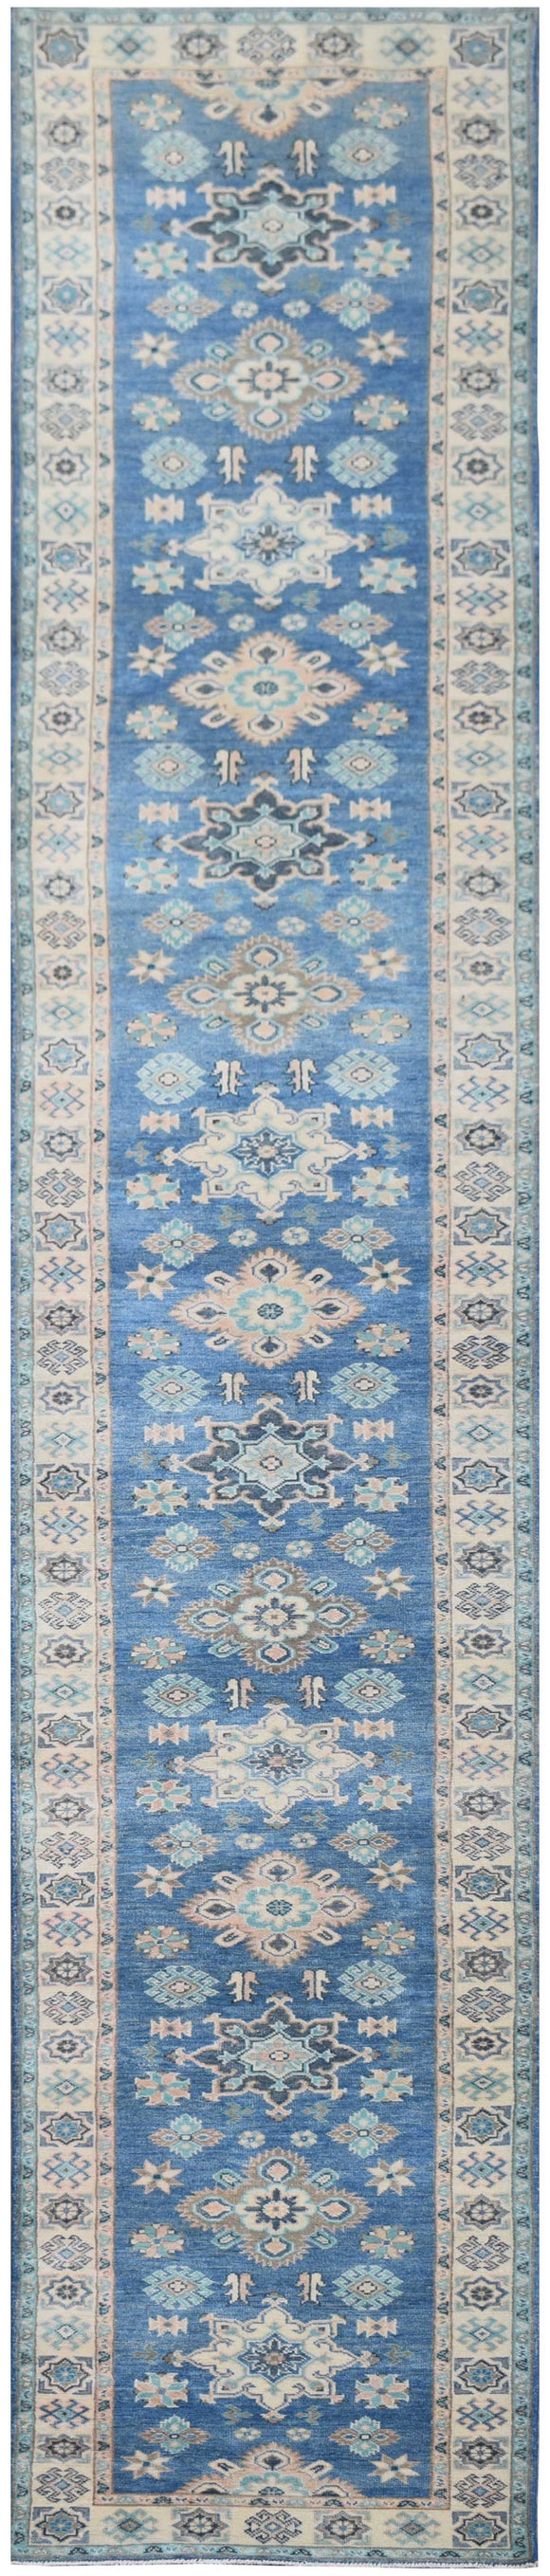 Handmade Sultan Collection Hallway Runner | 591 x 78 cm - Najaf Rugs & Textile